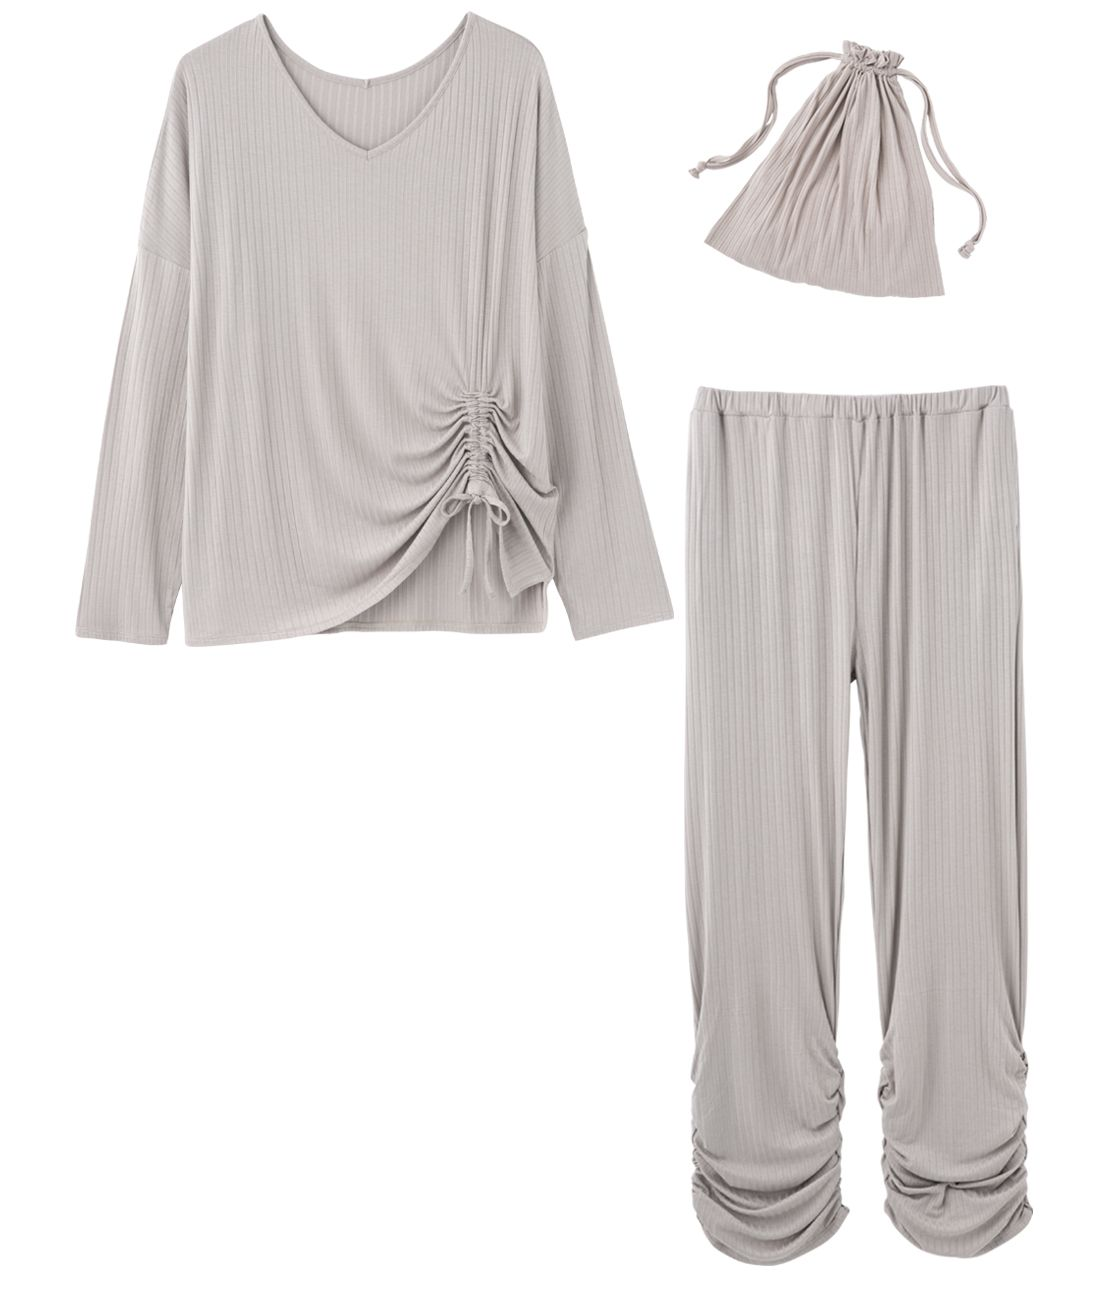 Dross tributyl Travel pajamas set